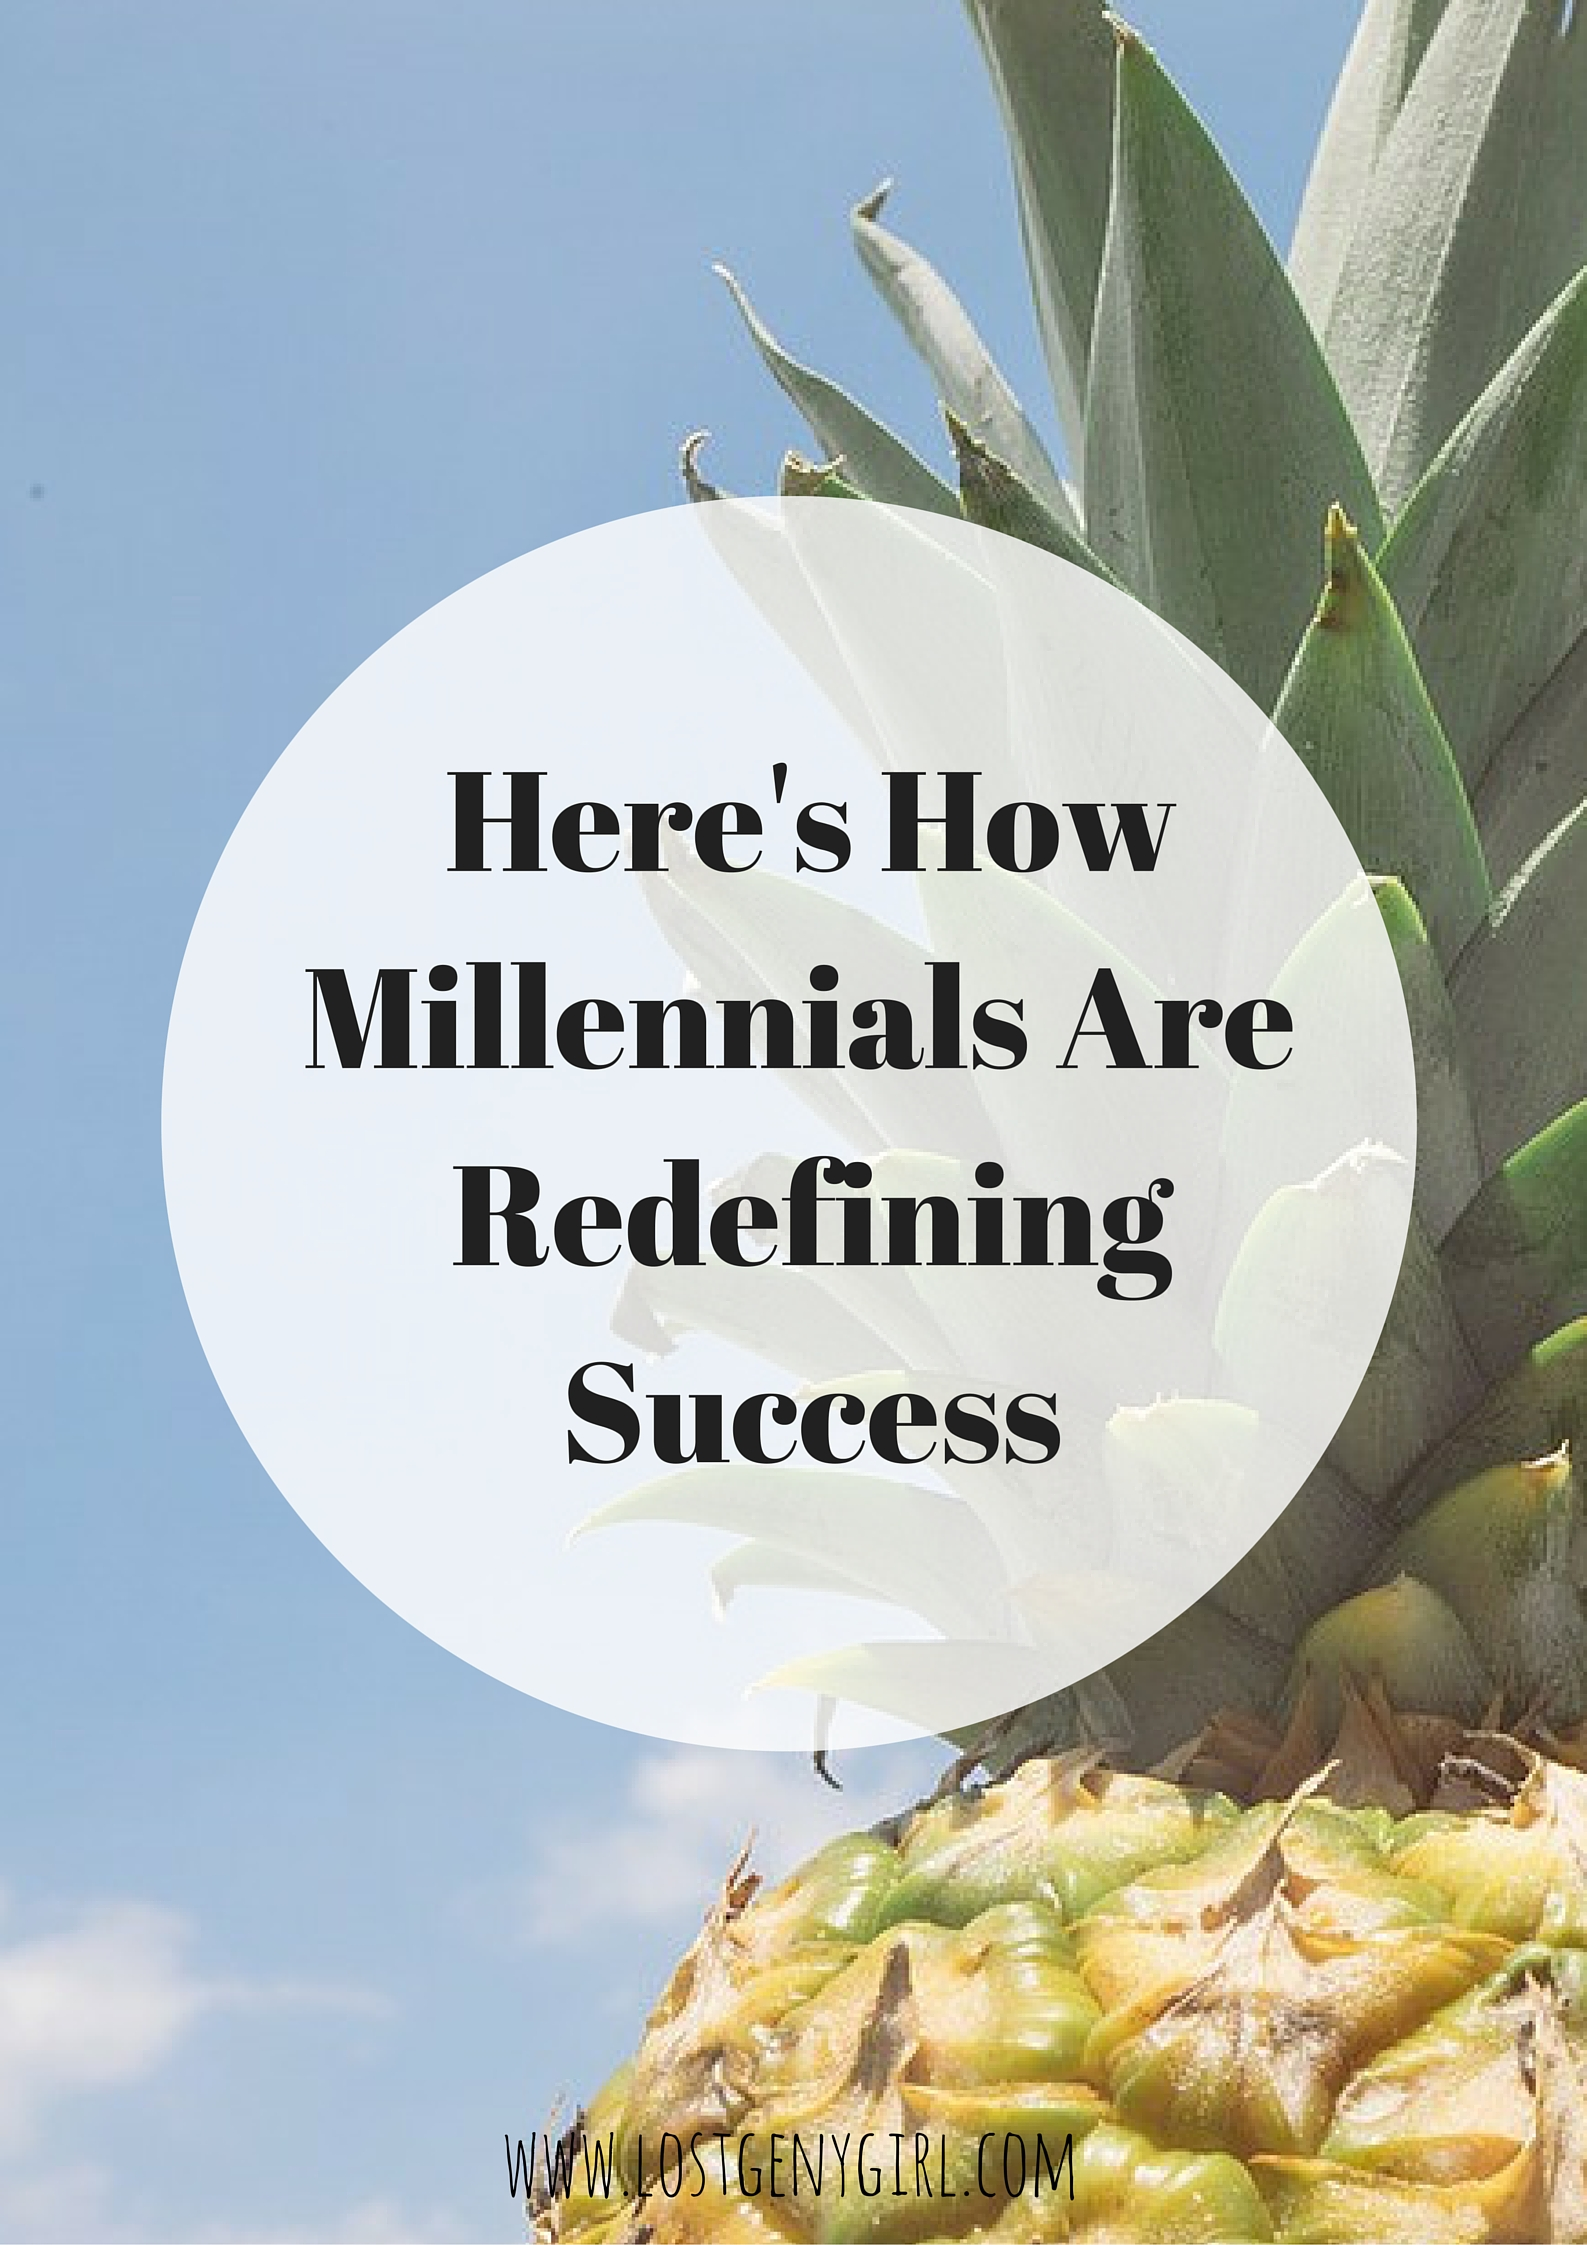 Millennials Are Redefining Success